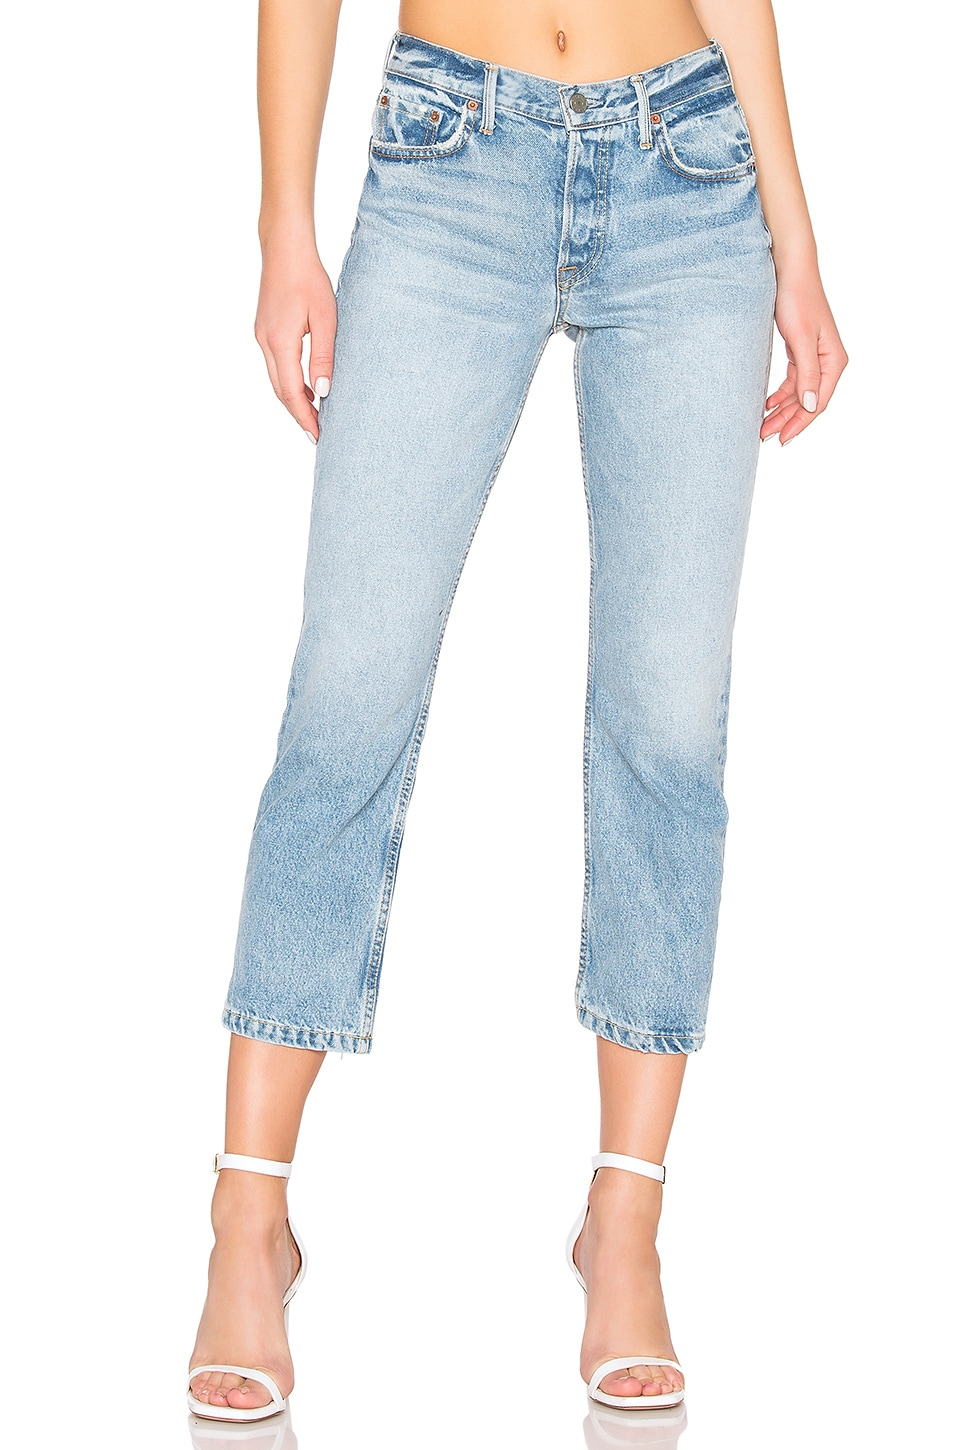 GRLFRND Tatum High-Rise Skinny Jean en New Romantic